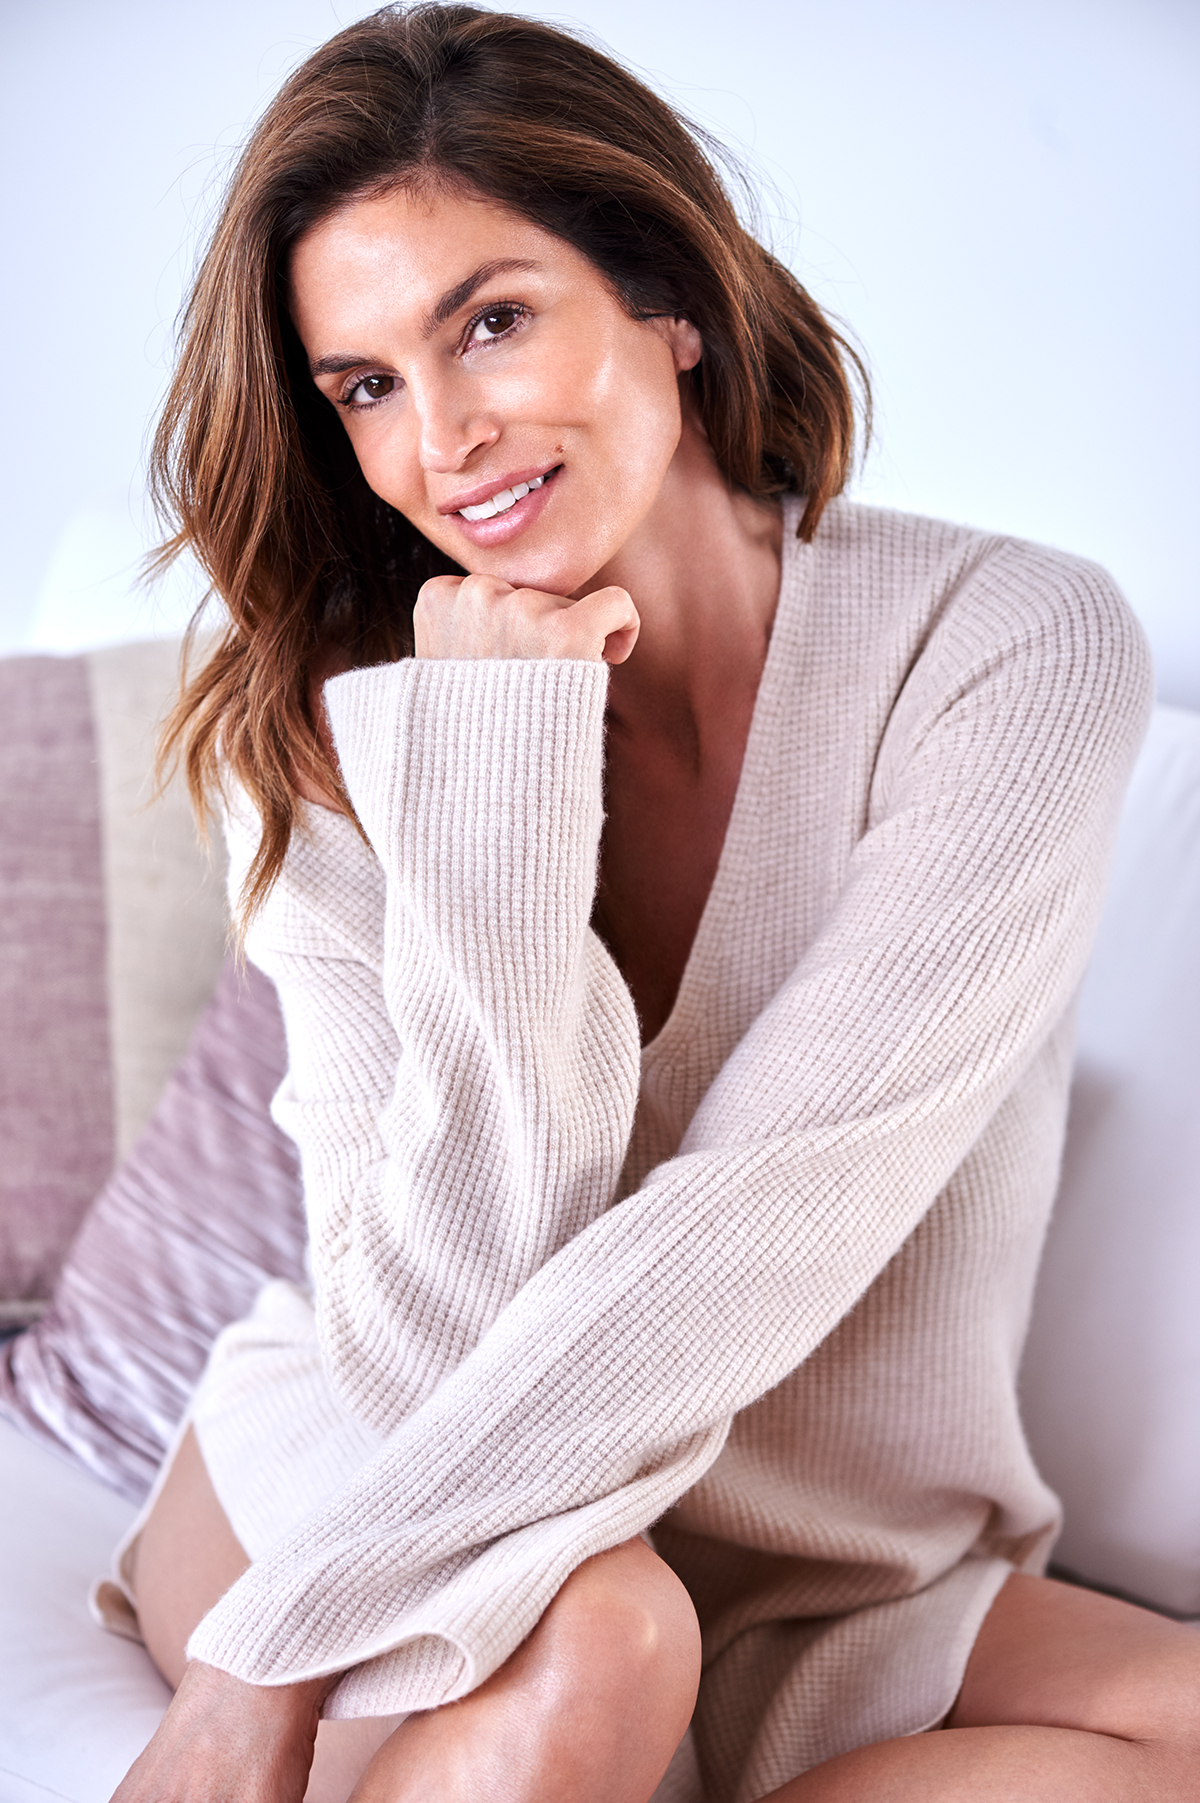 Cindy Crawford; Courtesy of Meaningful Beauty by Stewart Shining